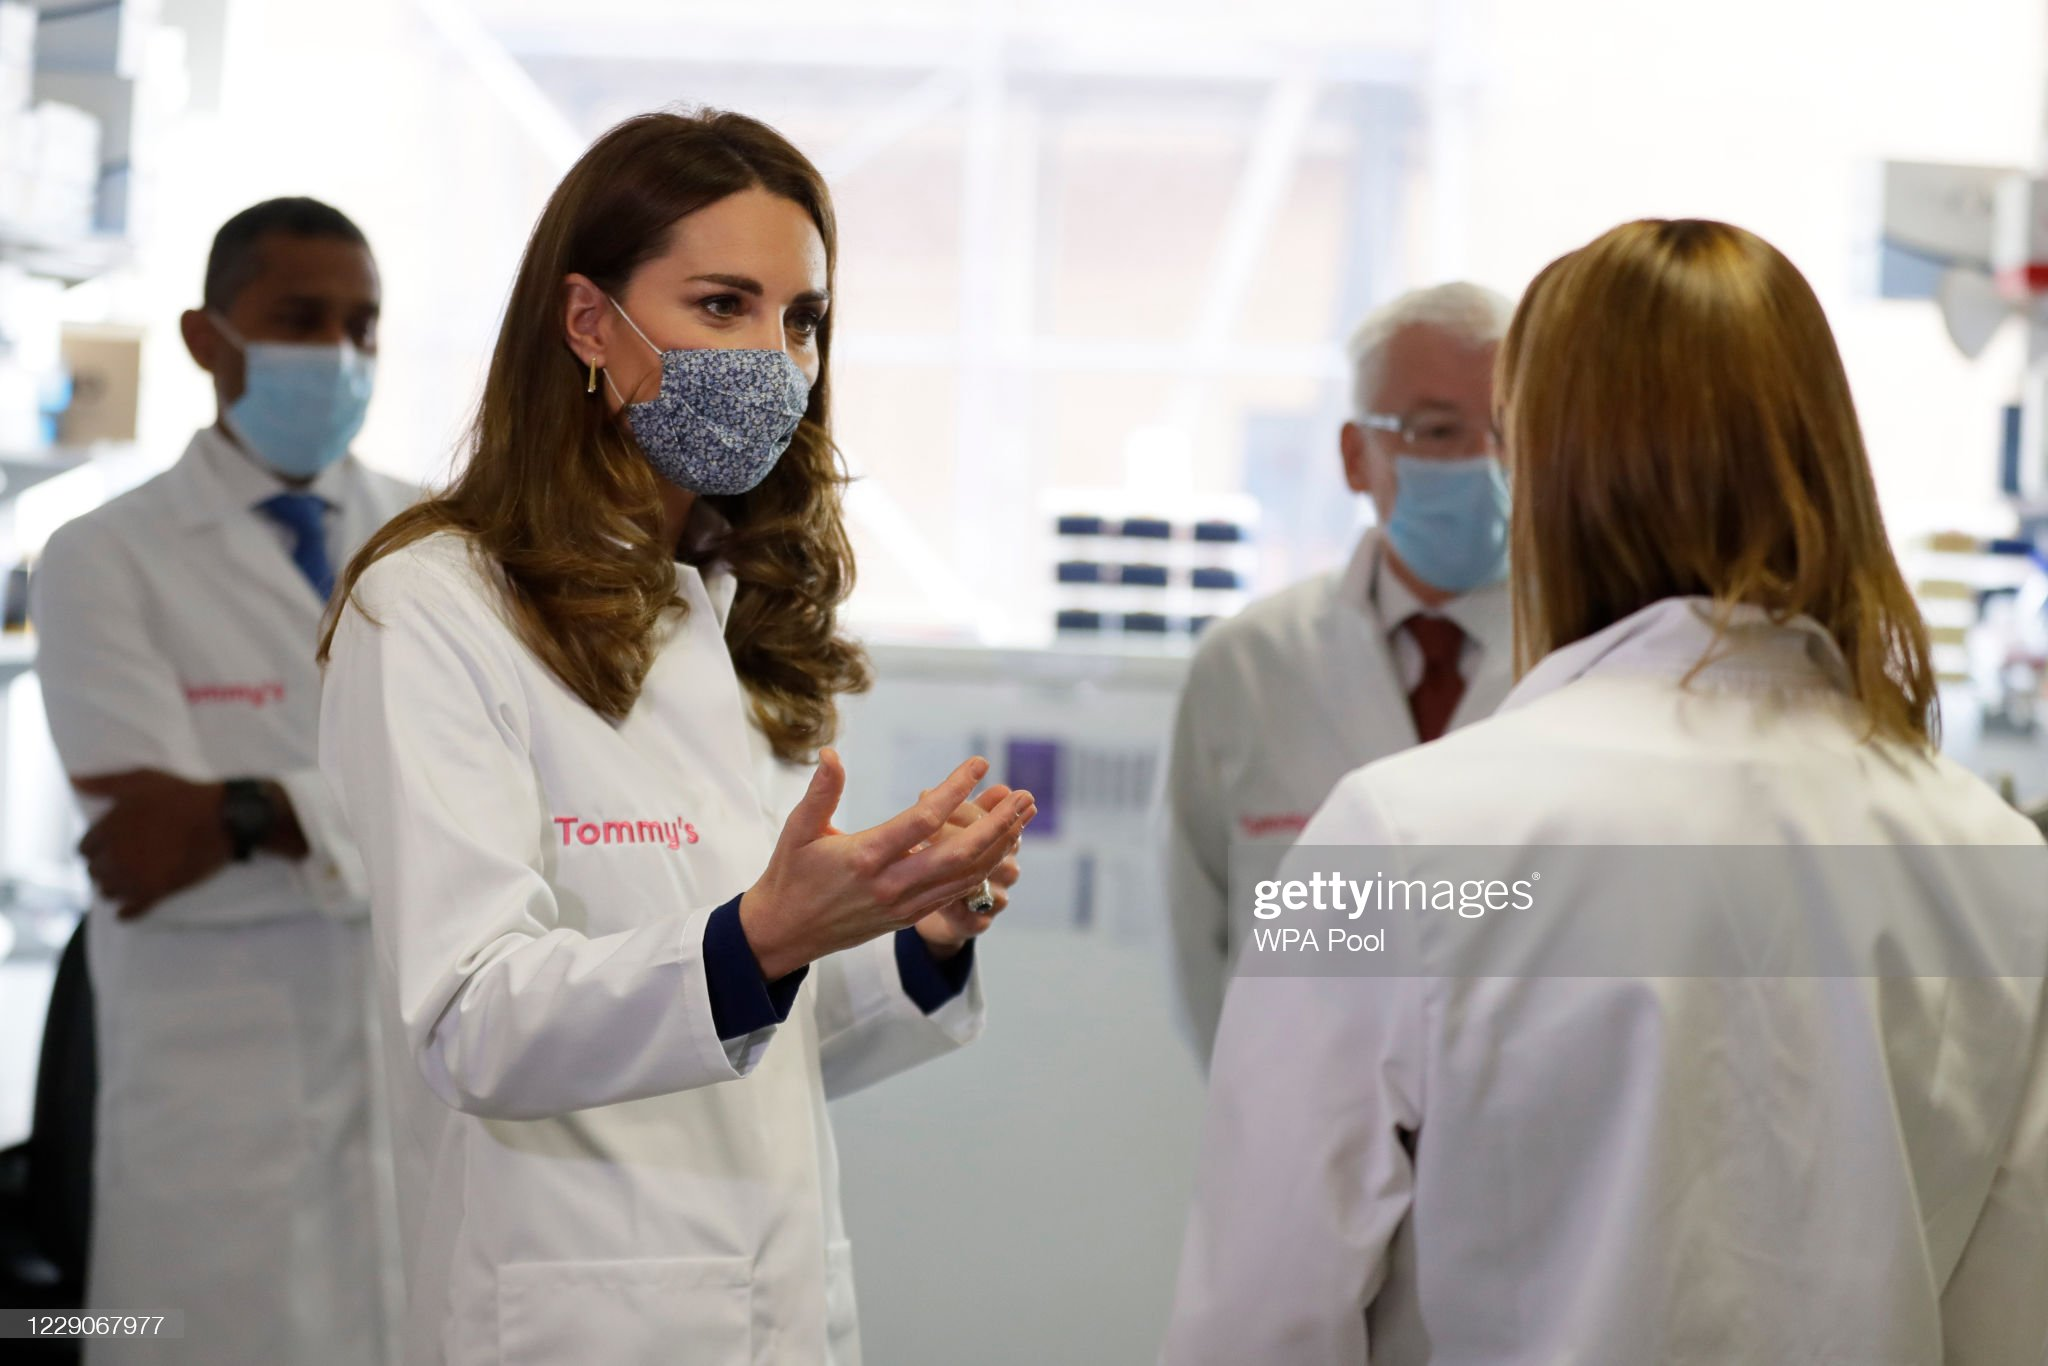 catherine-duchess-of-cambridge-tours-a-laboratory-during-a-visit-to-picture-id1229067977